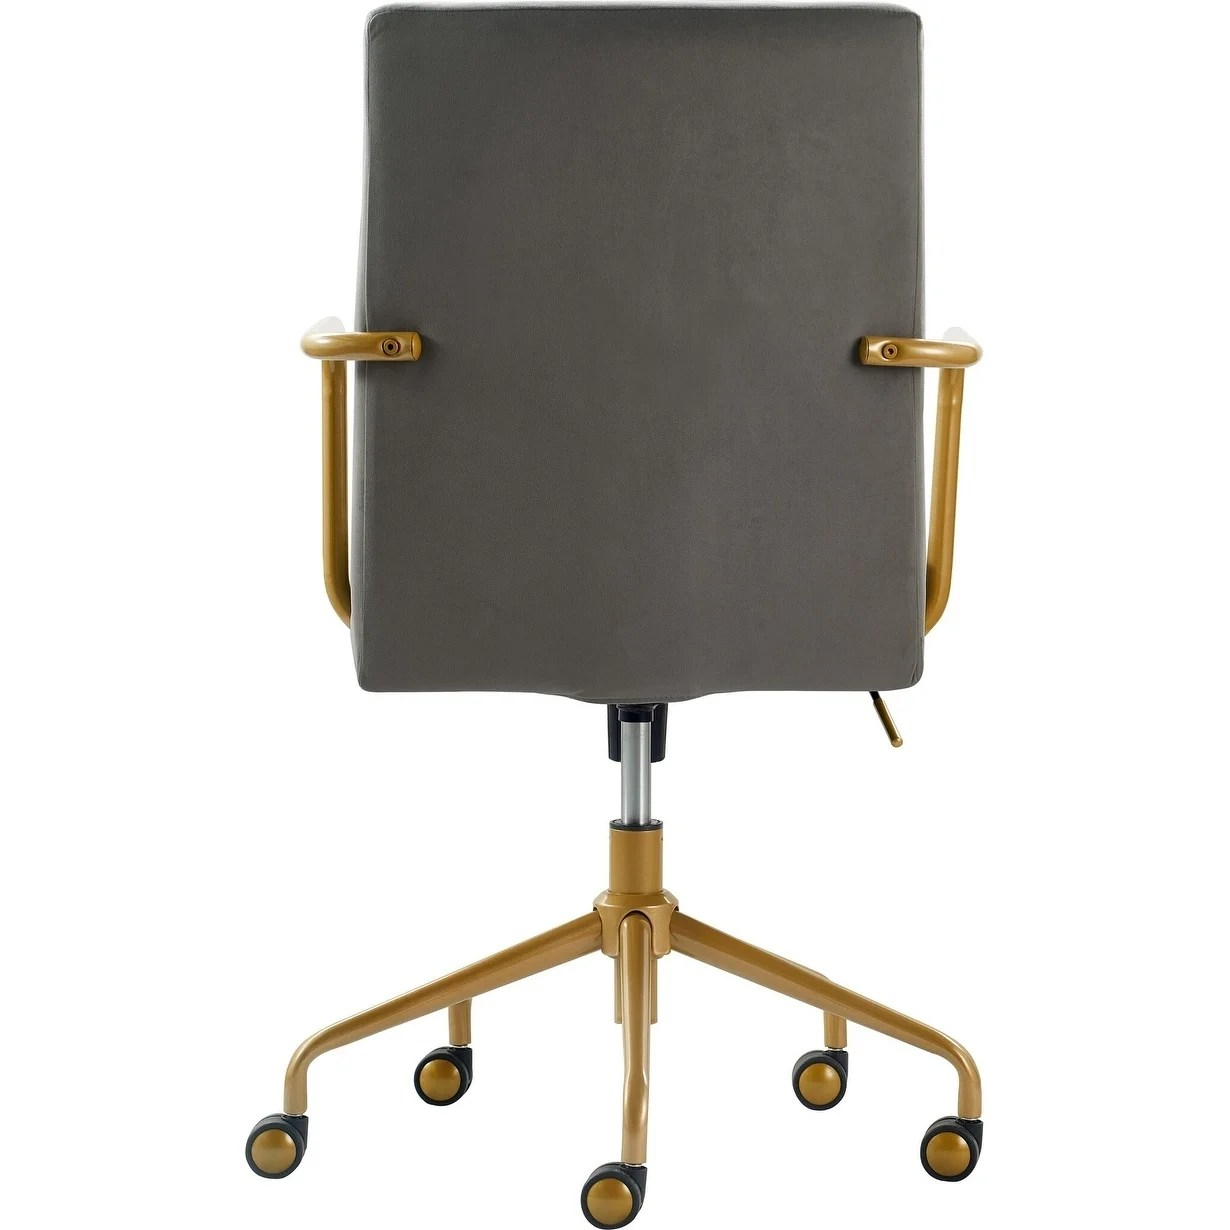 Grey Desk Chair Elle Decor Giselle Gold Desk Chair